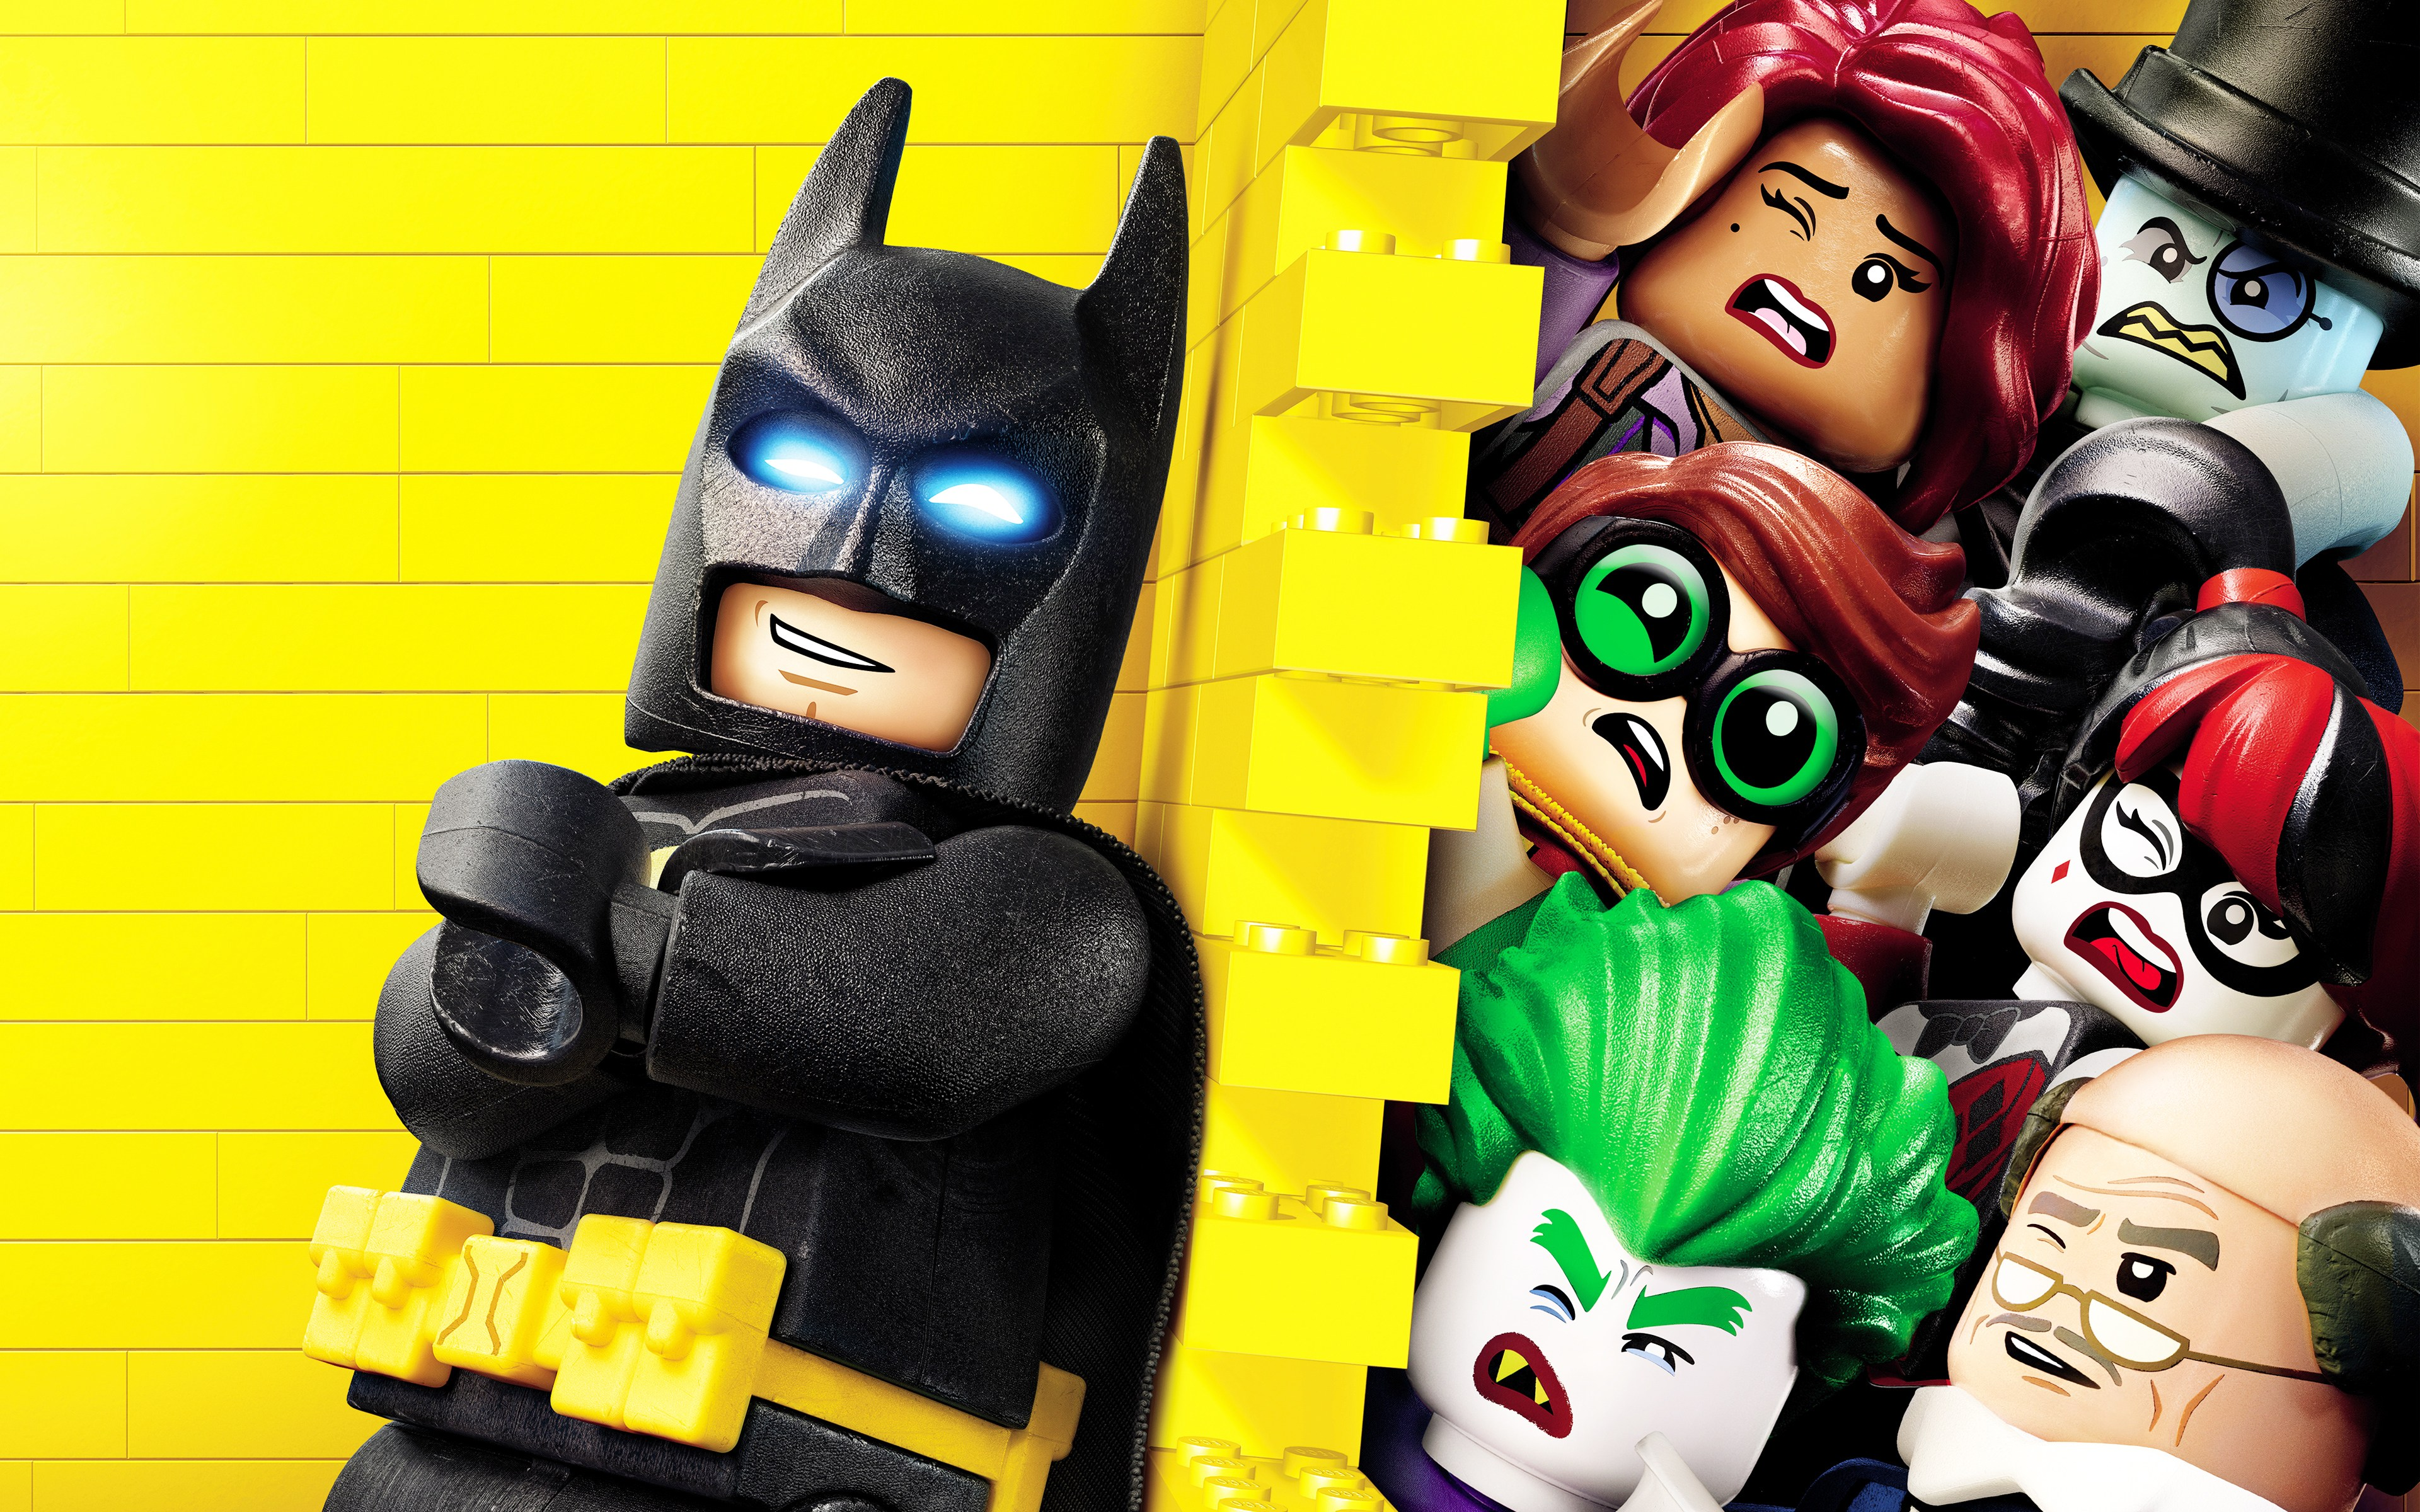 This Lego Batman Wallpapers Uploaded By Audreanne Reynolds